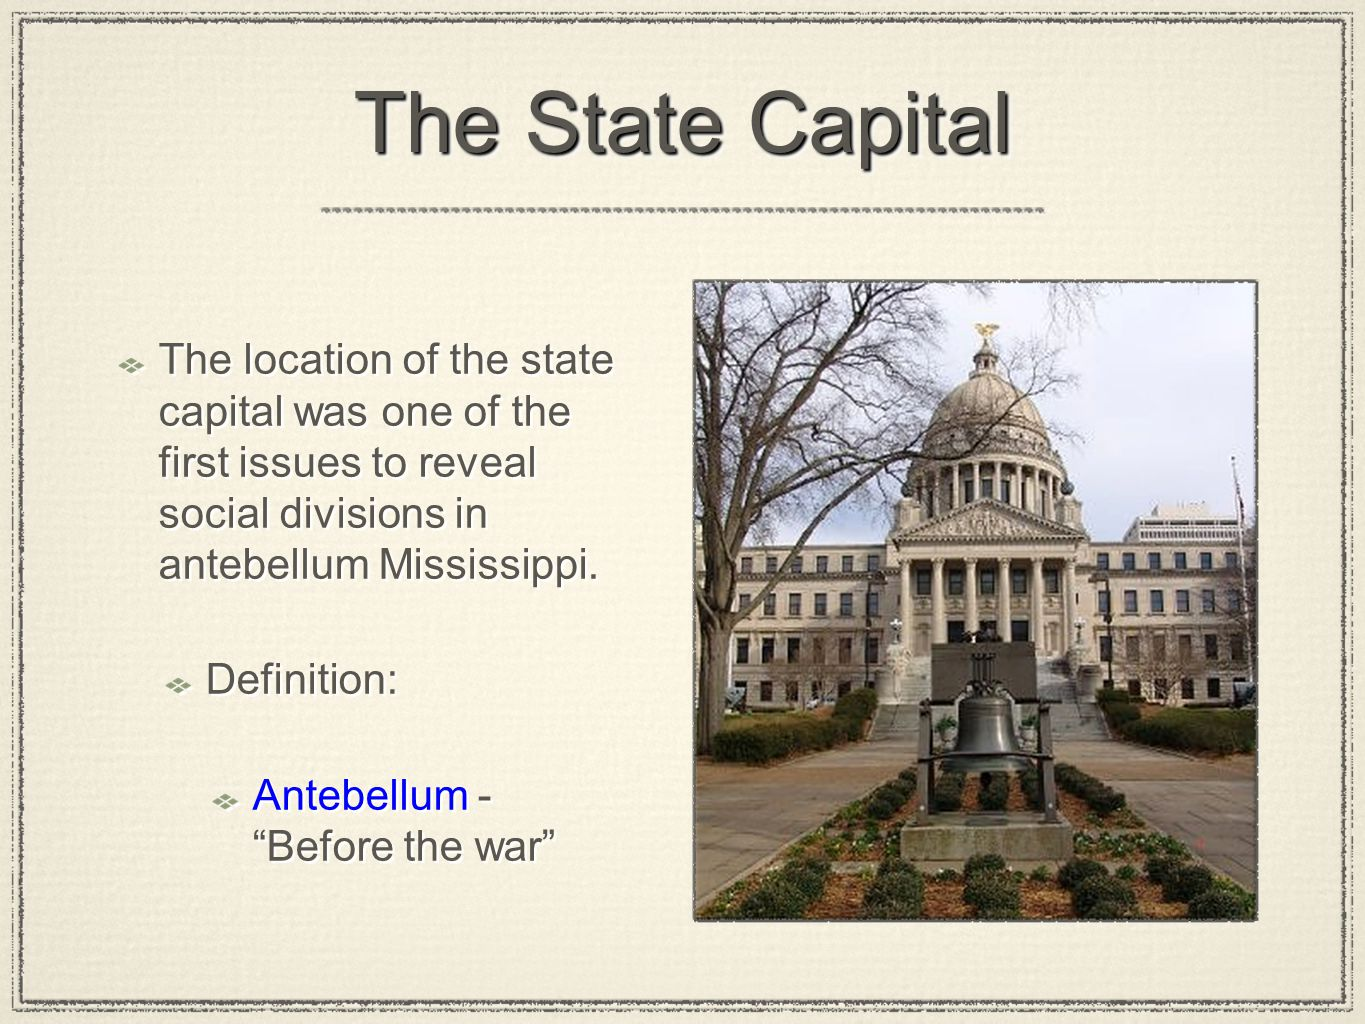 The State Capital The location of the state capital was one of the first issues to reveal social divisions in antebellum Mississippi.